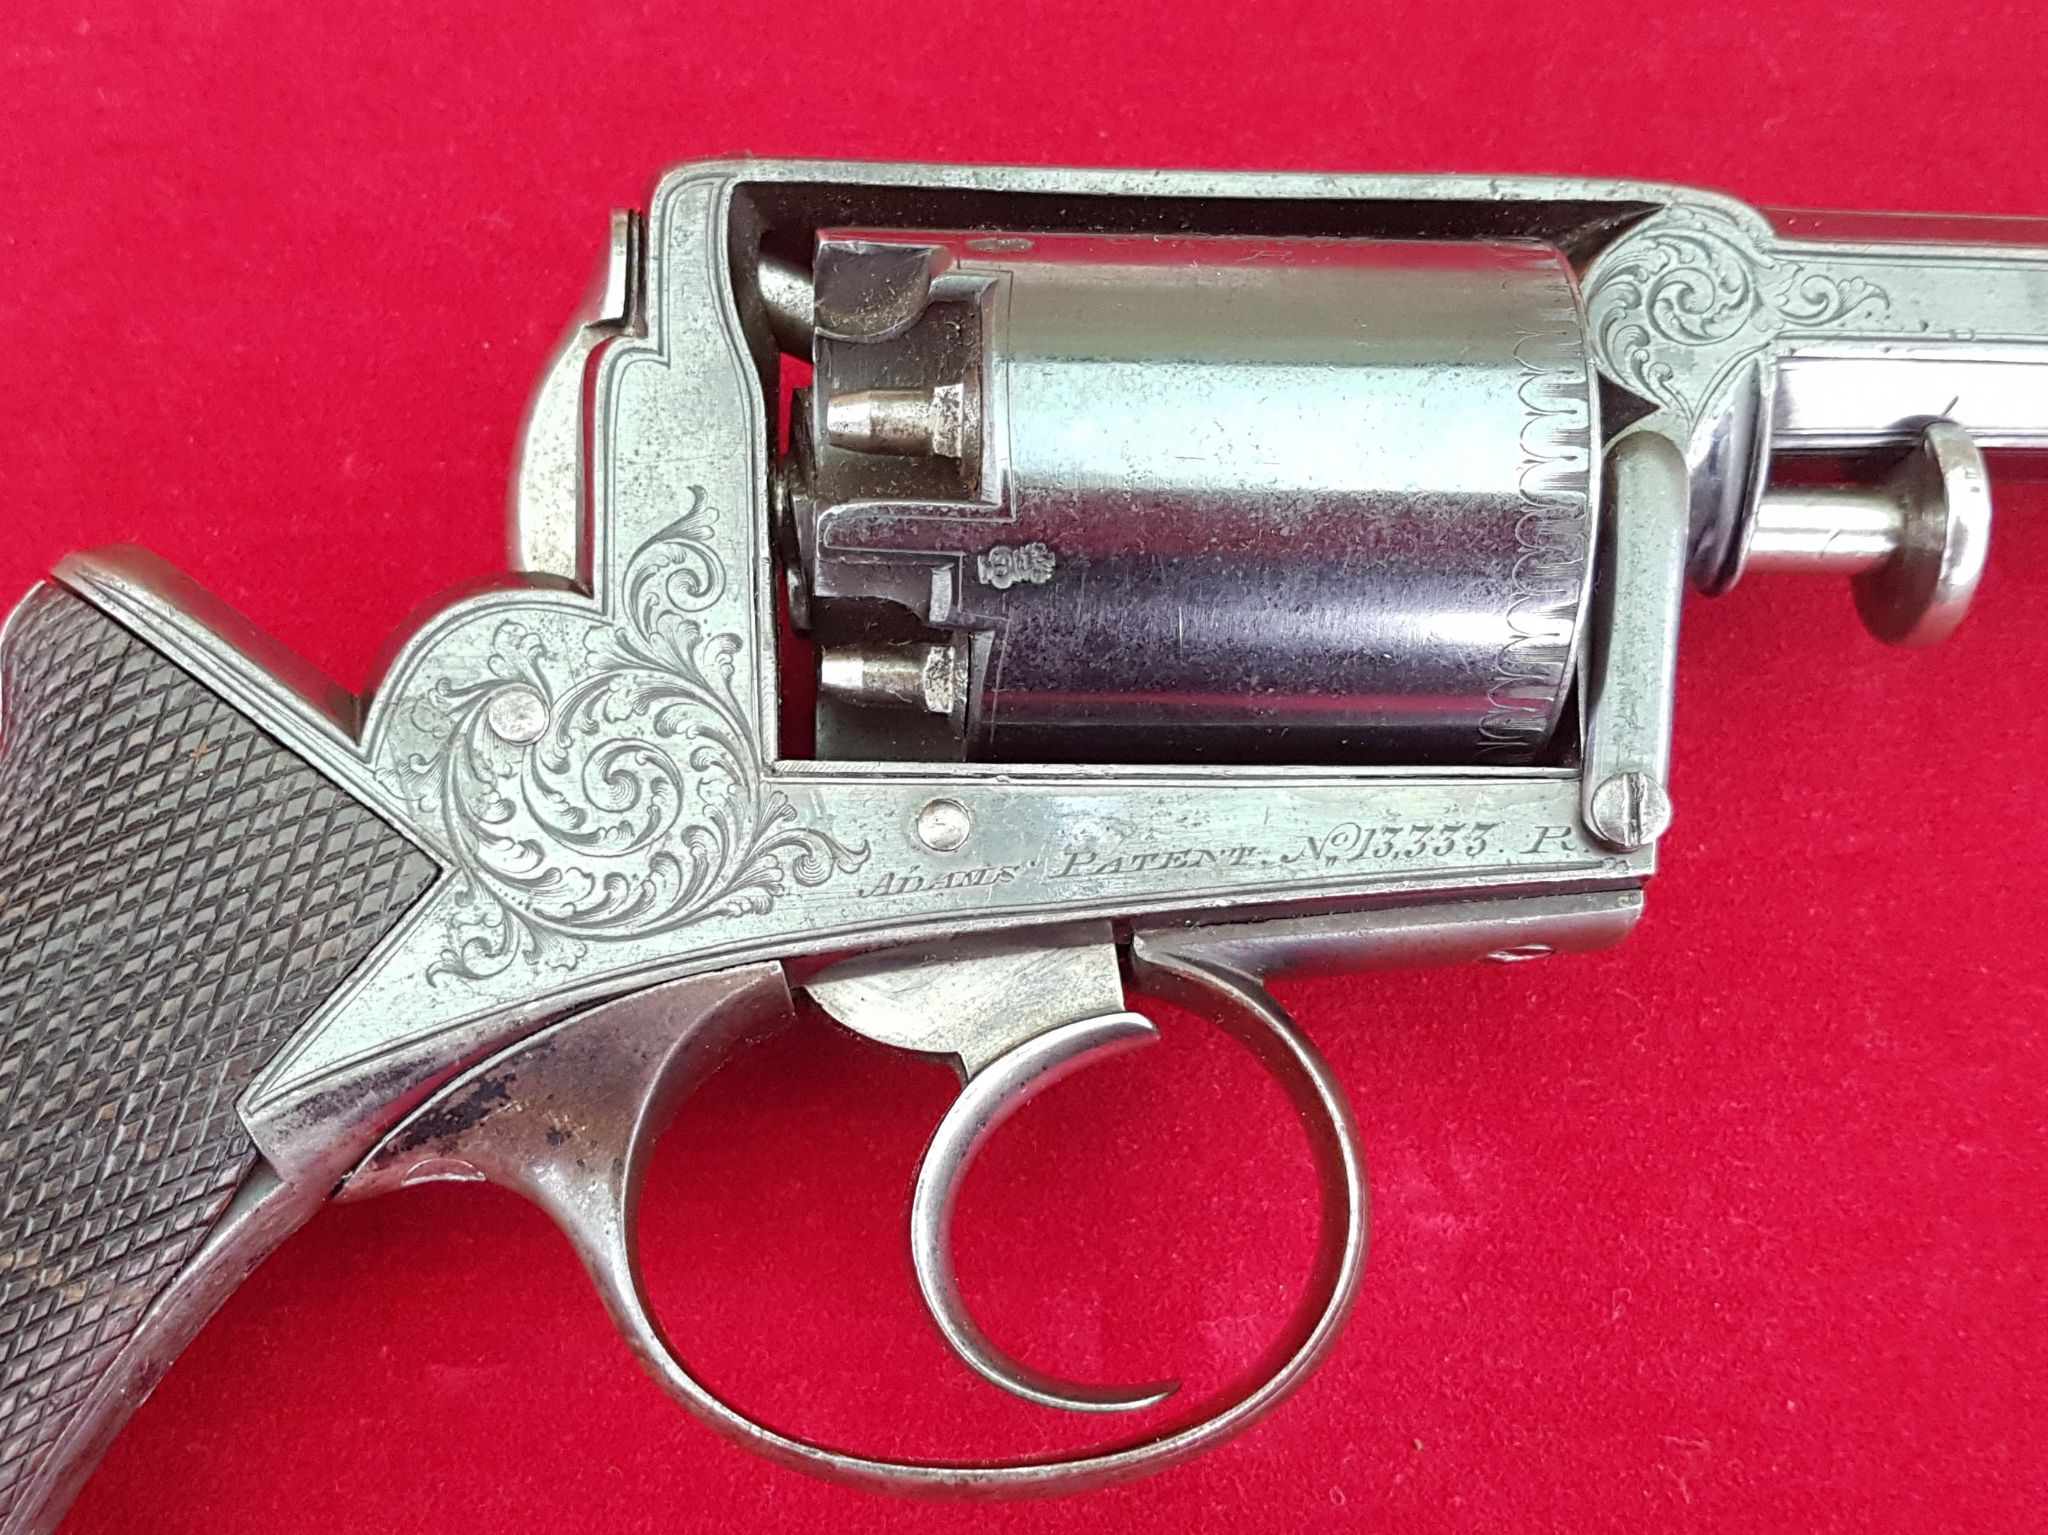 An exceptional 54 bore percussion revolver by Deane Adams & Deane